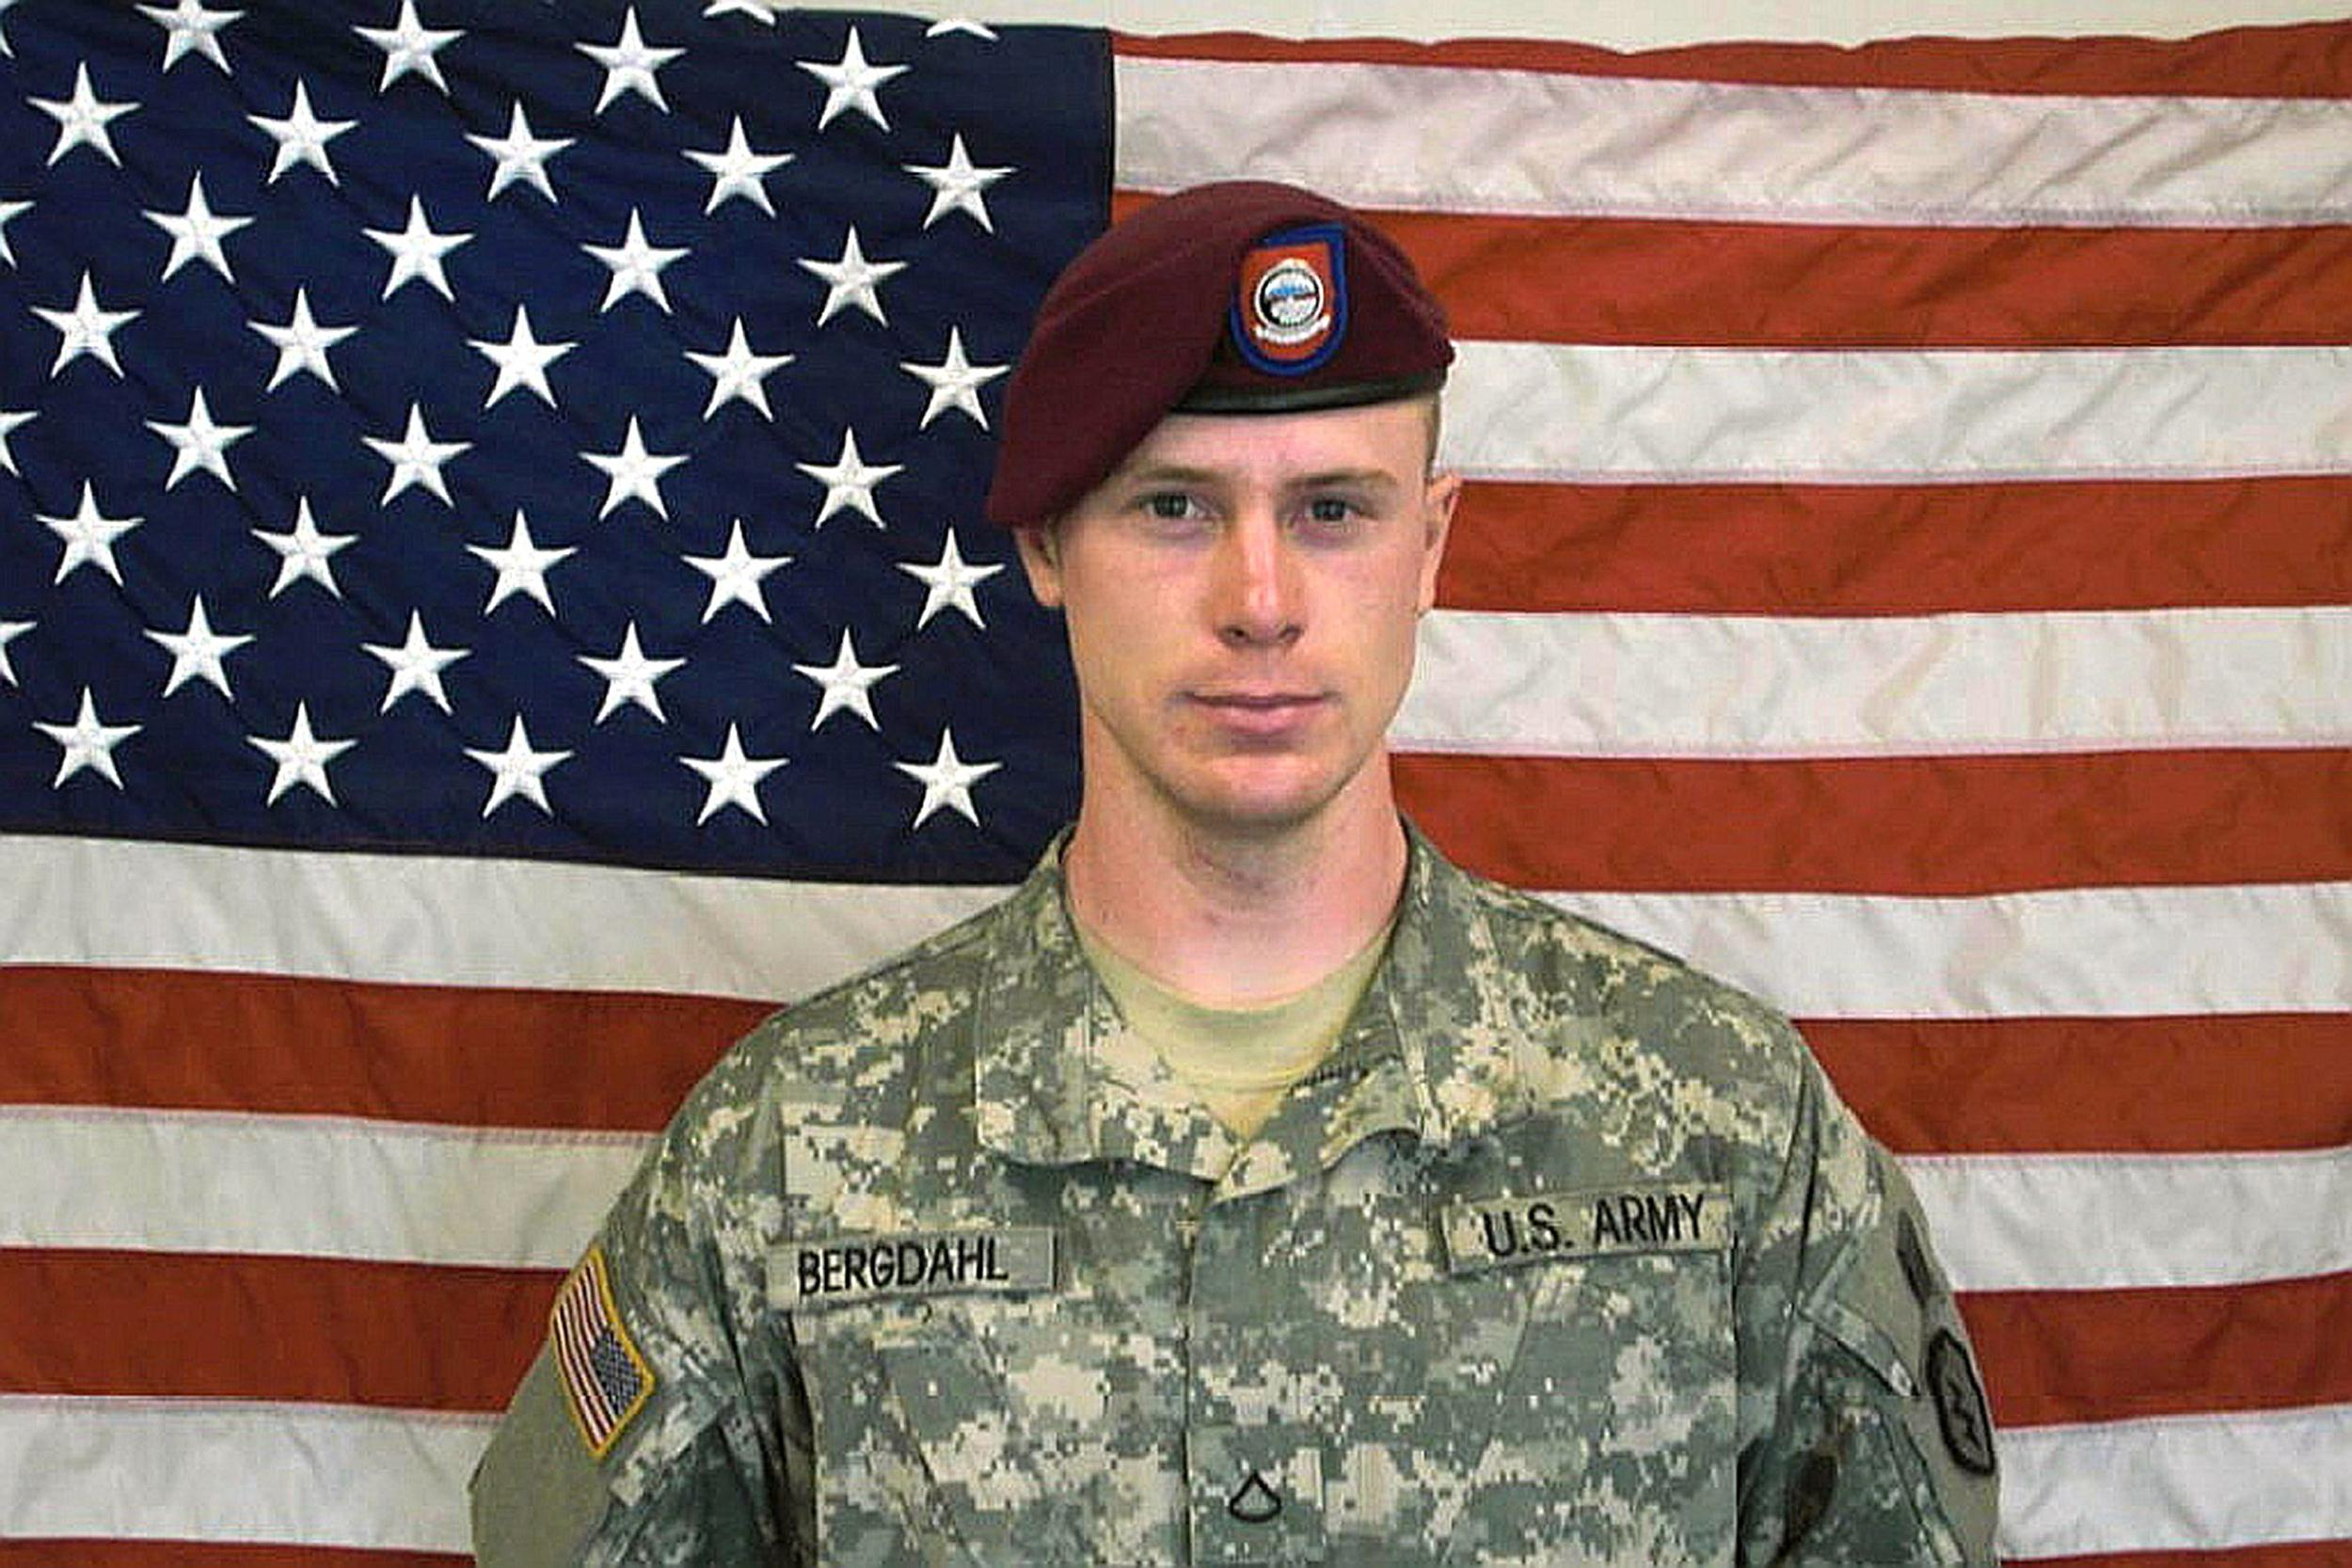 Image: Private First Class(Pfc) Bowe Bergdahl, before his capture by the Taliban in Afghanistan